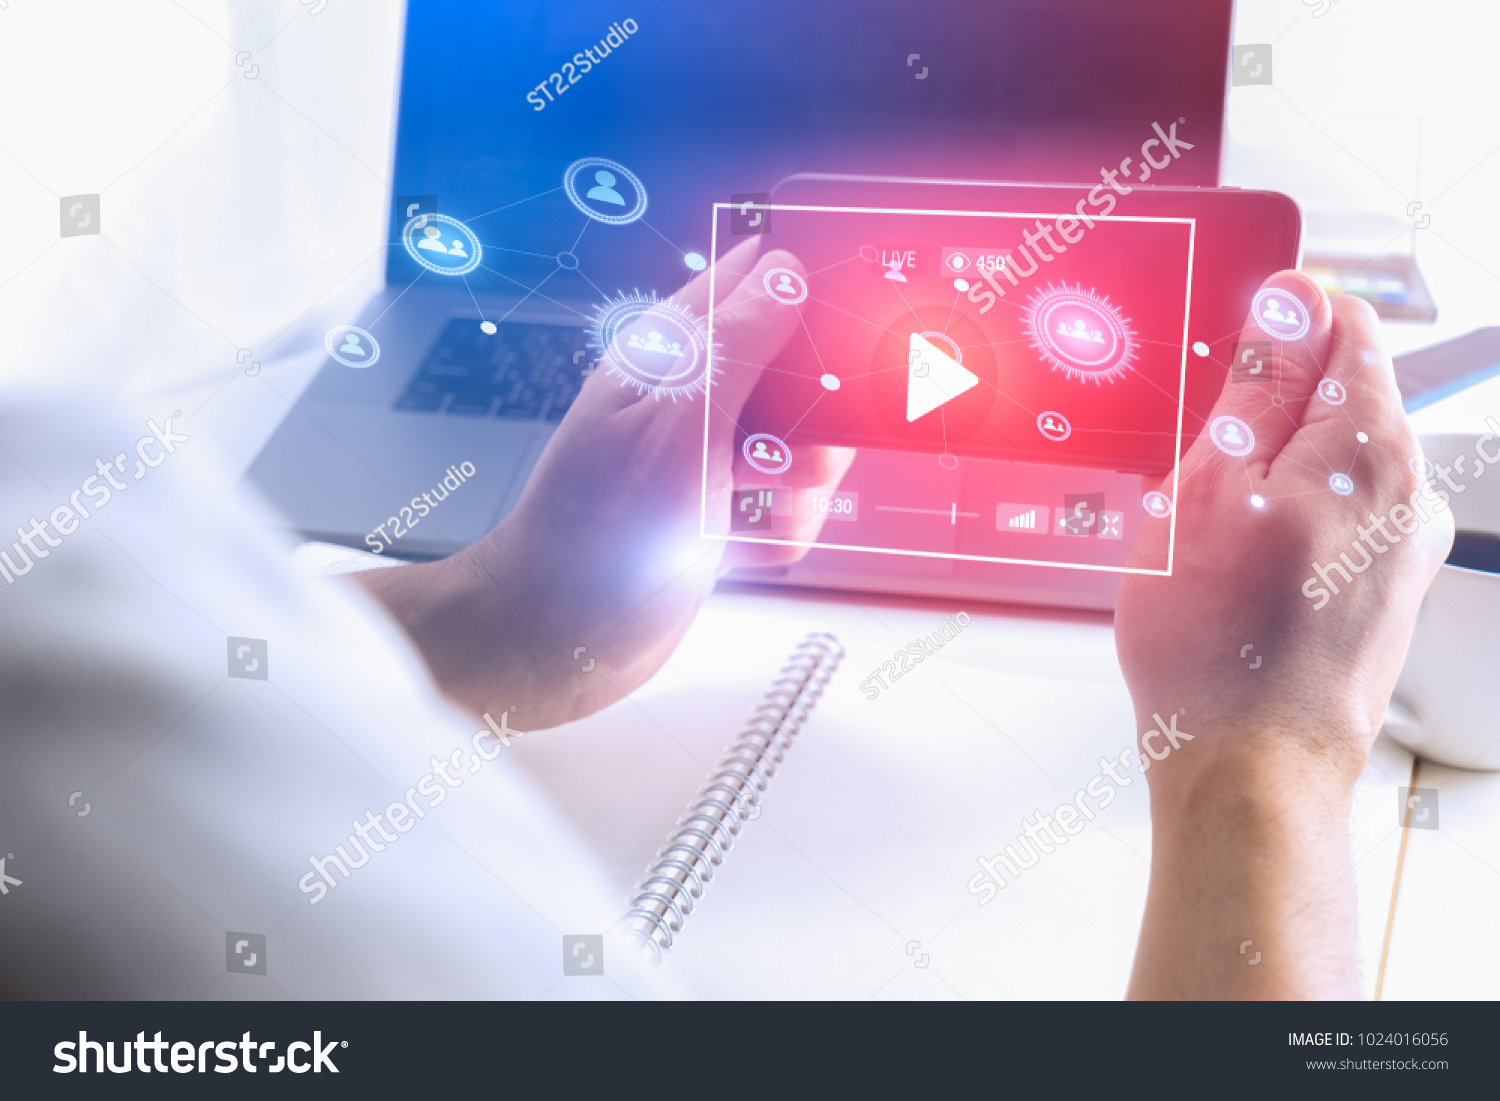 Man hand using Smartphone to watch Live streaming media online technology.